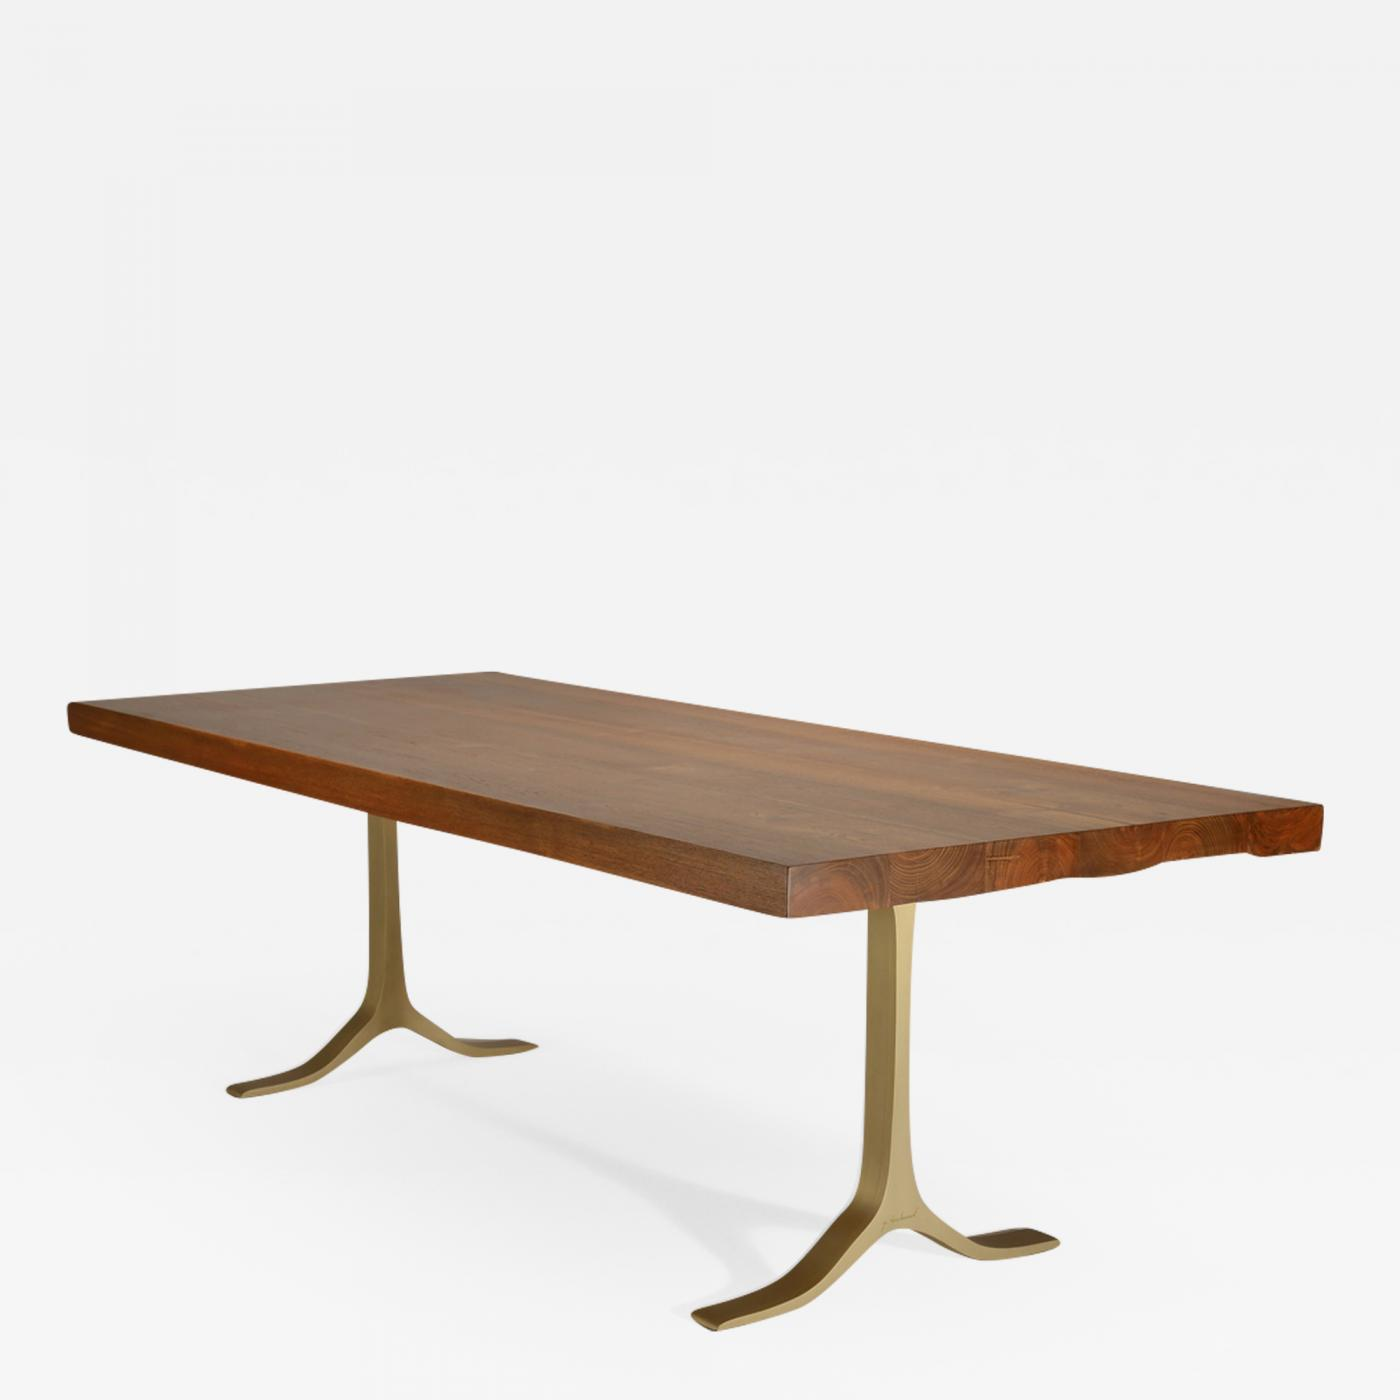 Round Timber Dining Table P Tendercool Bespoke Reclaimed Hardwood Dining Table Hand Cast Brass Base By P Tendercool